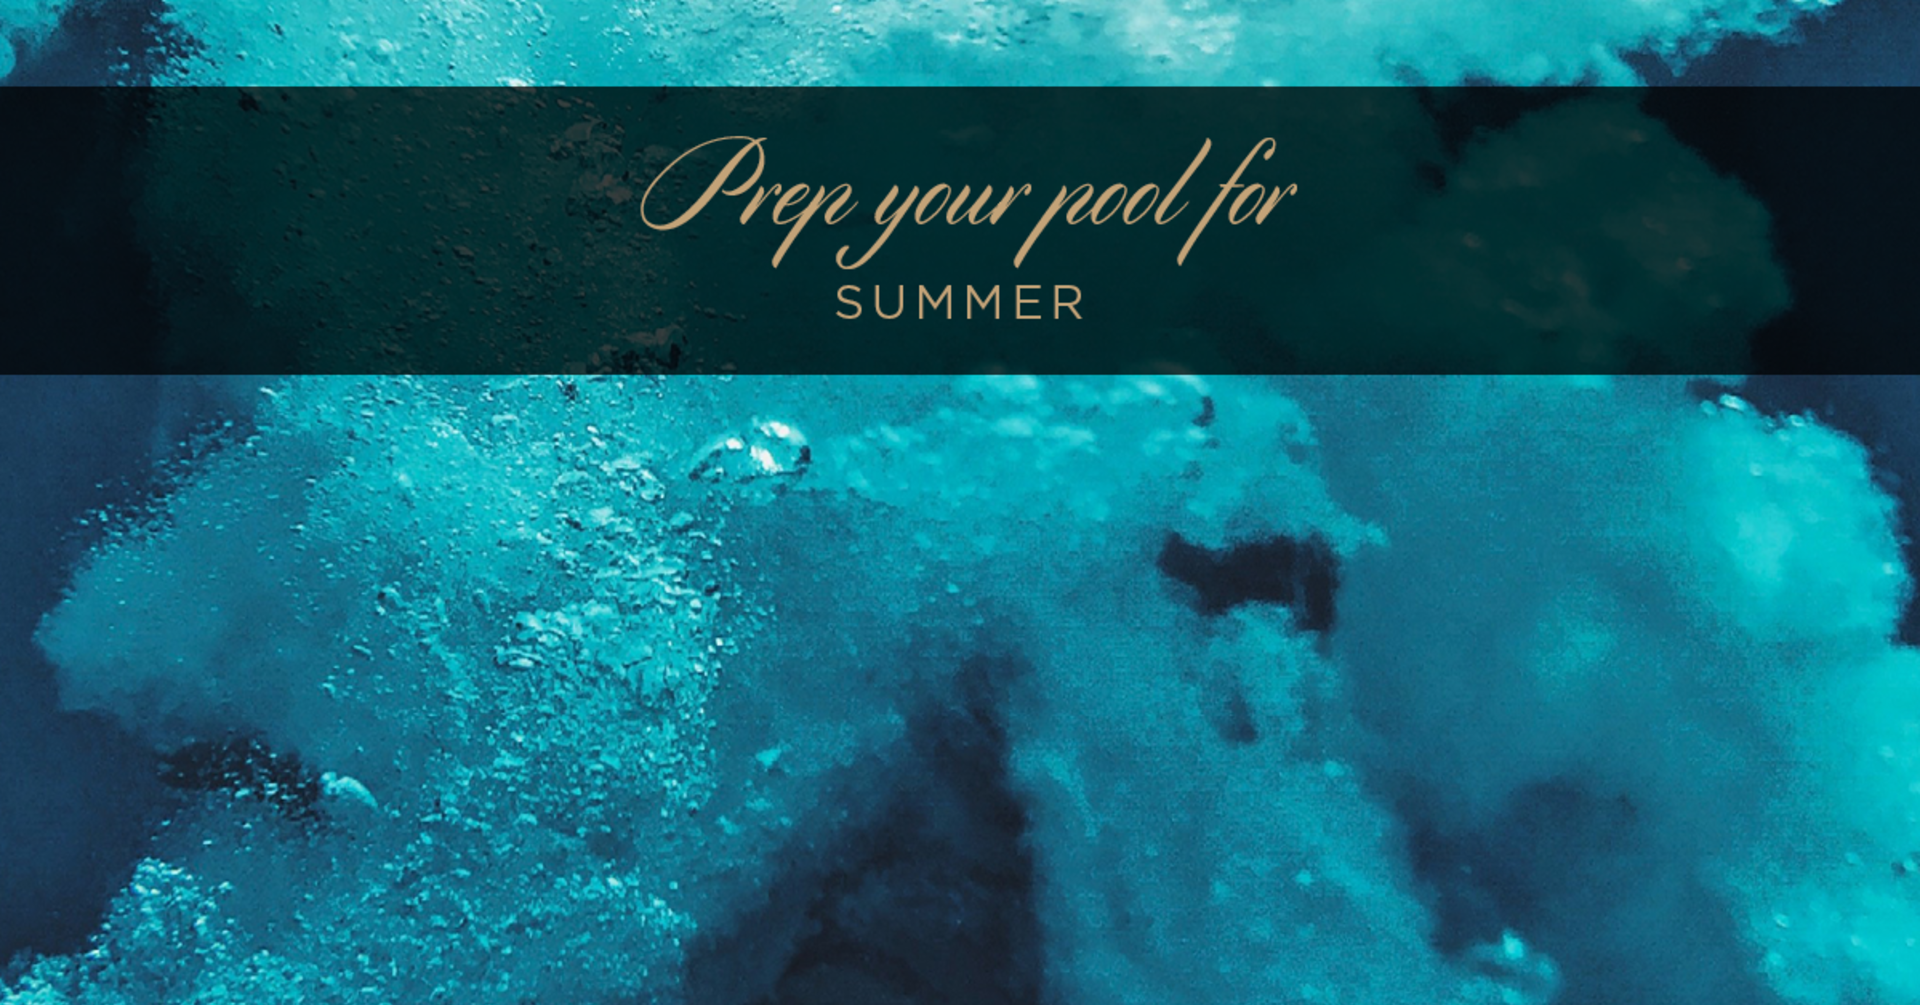 Prep Your Pool For Summer